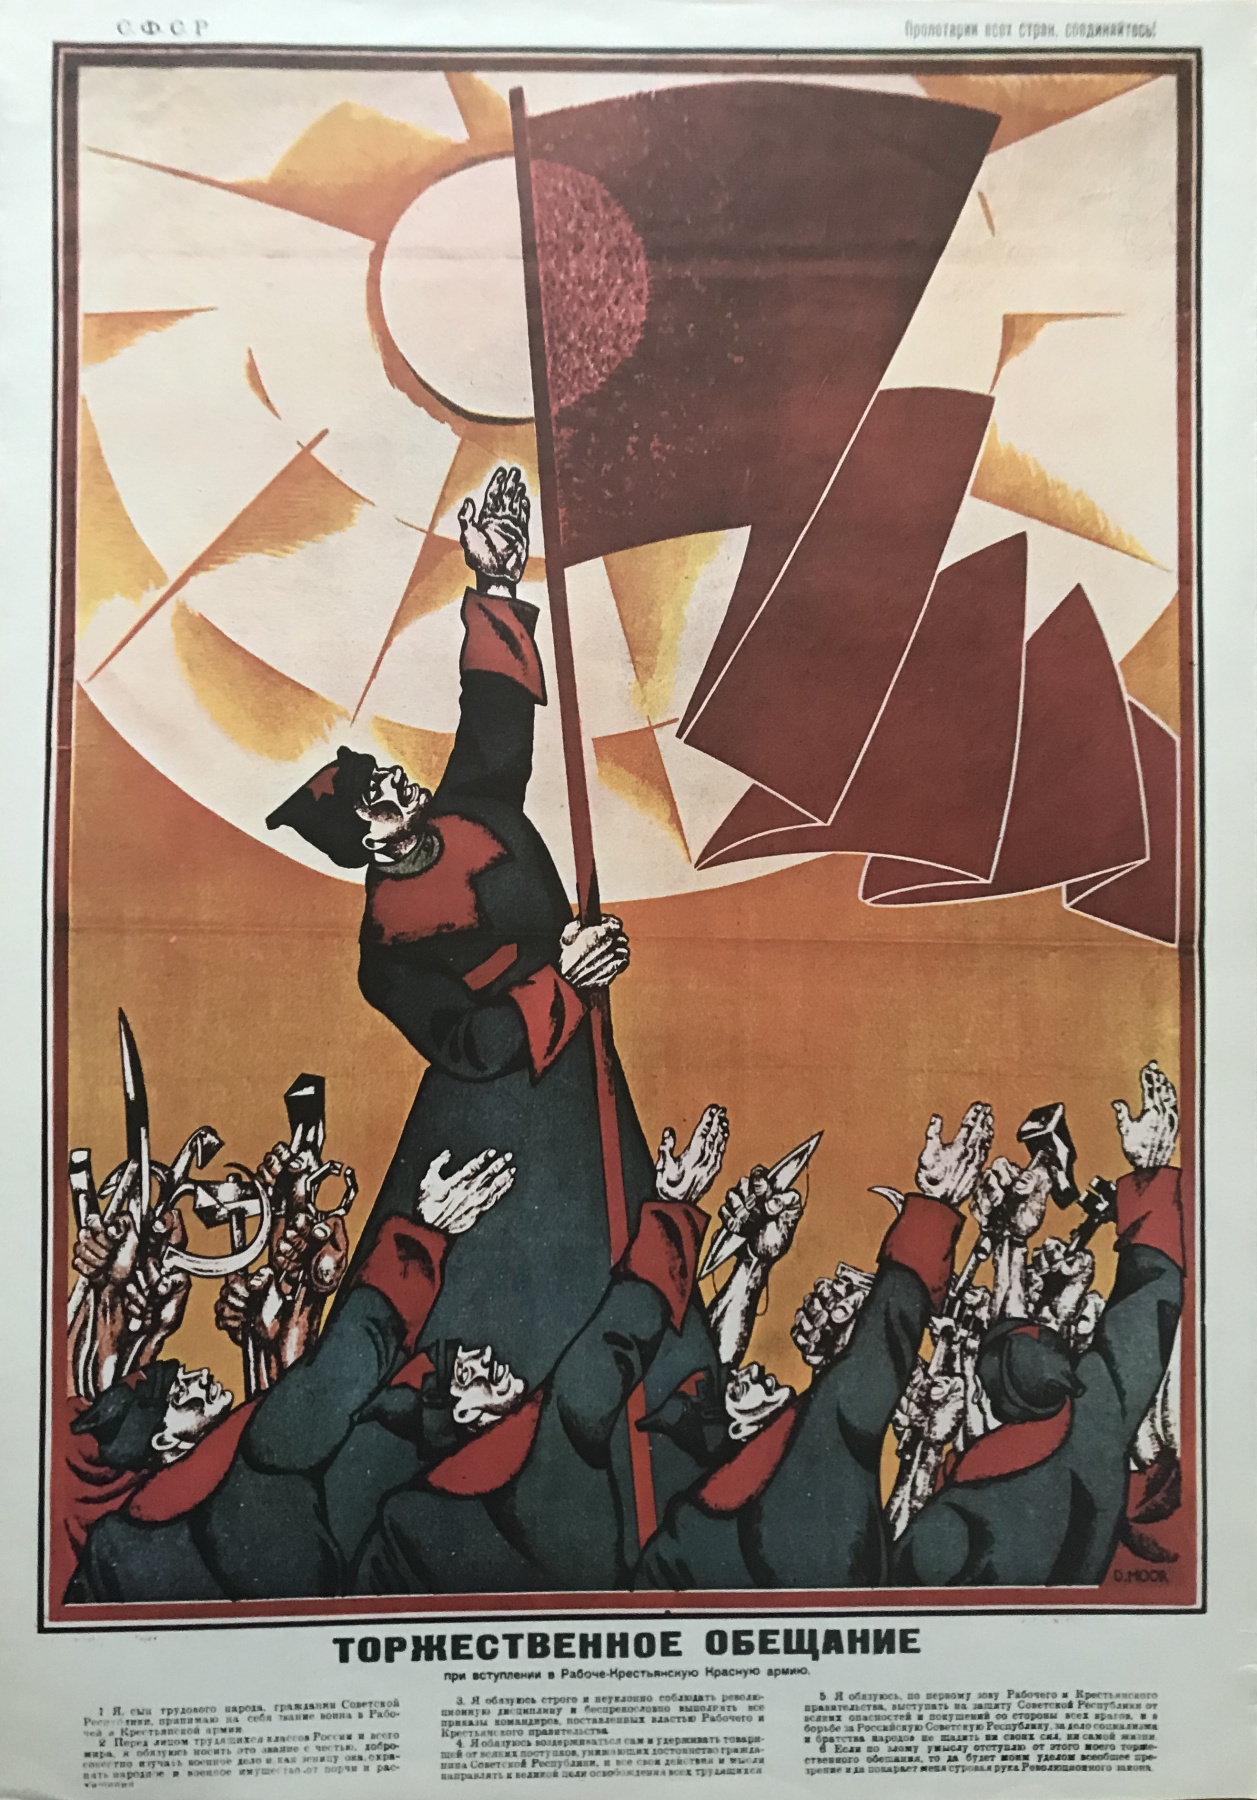 Dmitry Stakhievich Moore (Orlov). Through the wreckage of capitalism to a universal brotherhood of working people!